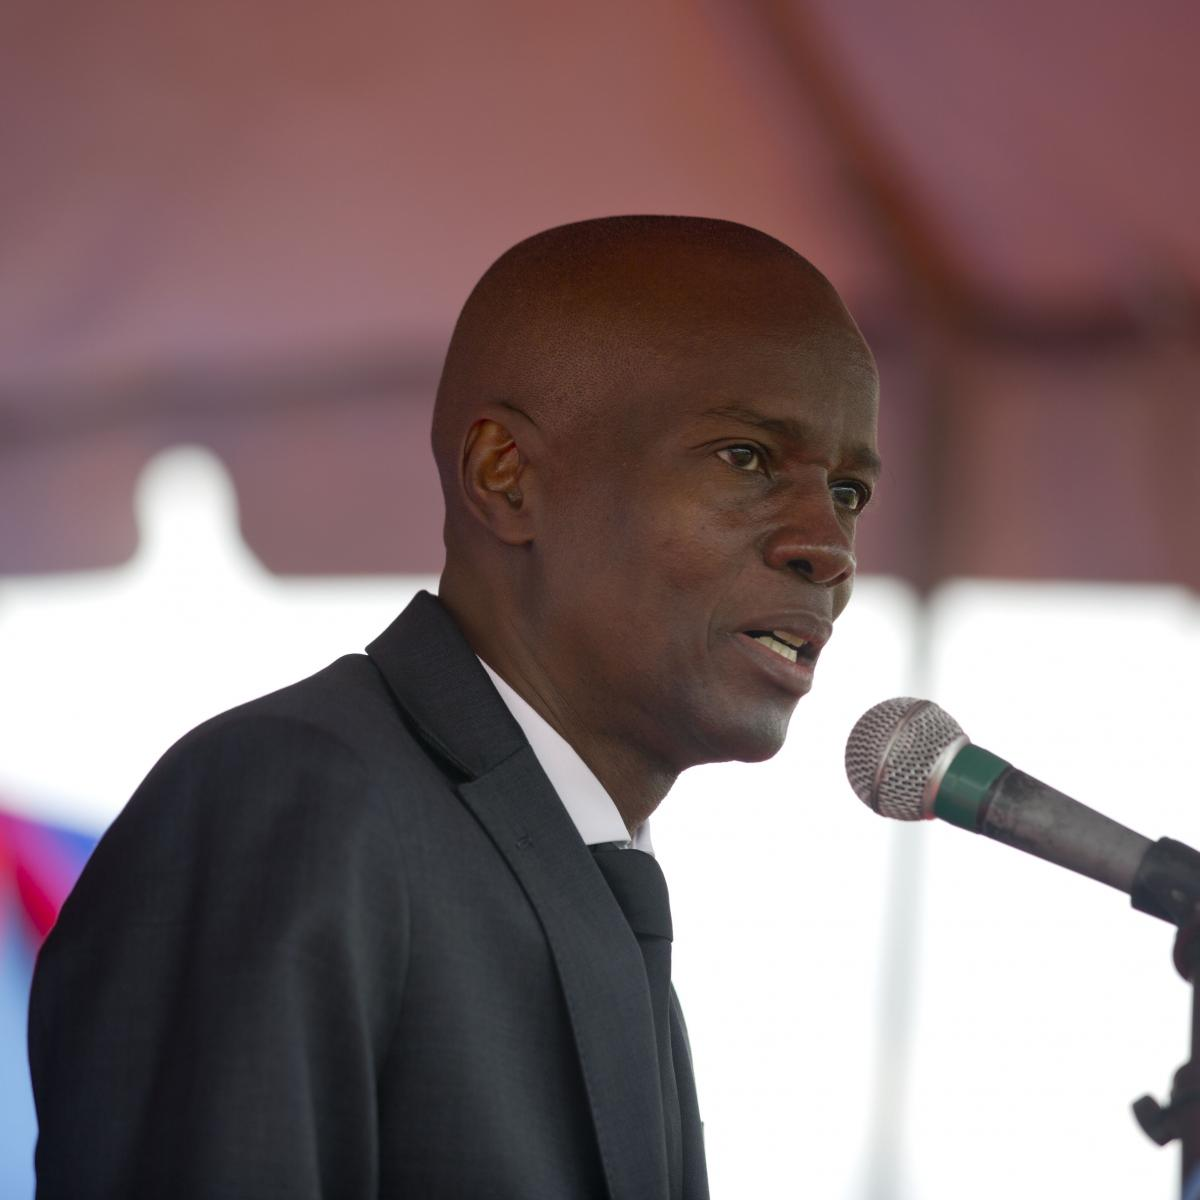 Haiti's president Jovenel Moise talks during a ceremony to lay the first stone for the construction of a new National Palace on the 8th anniversary of the 2010 earthquake, in Port-au-Prince, Haiti, in January.